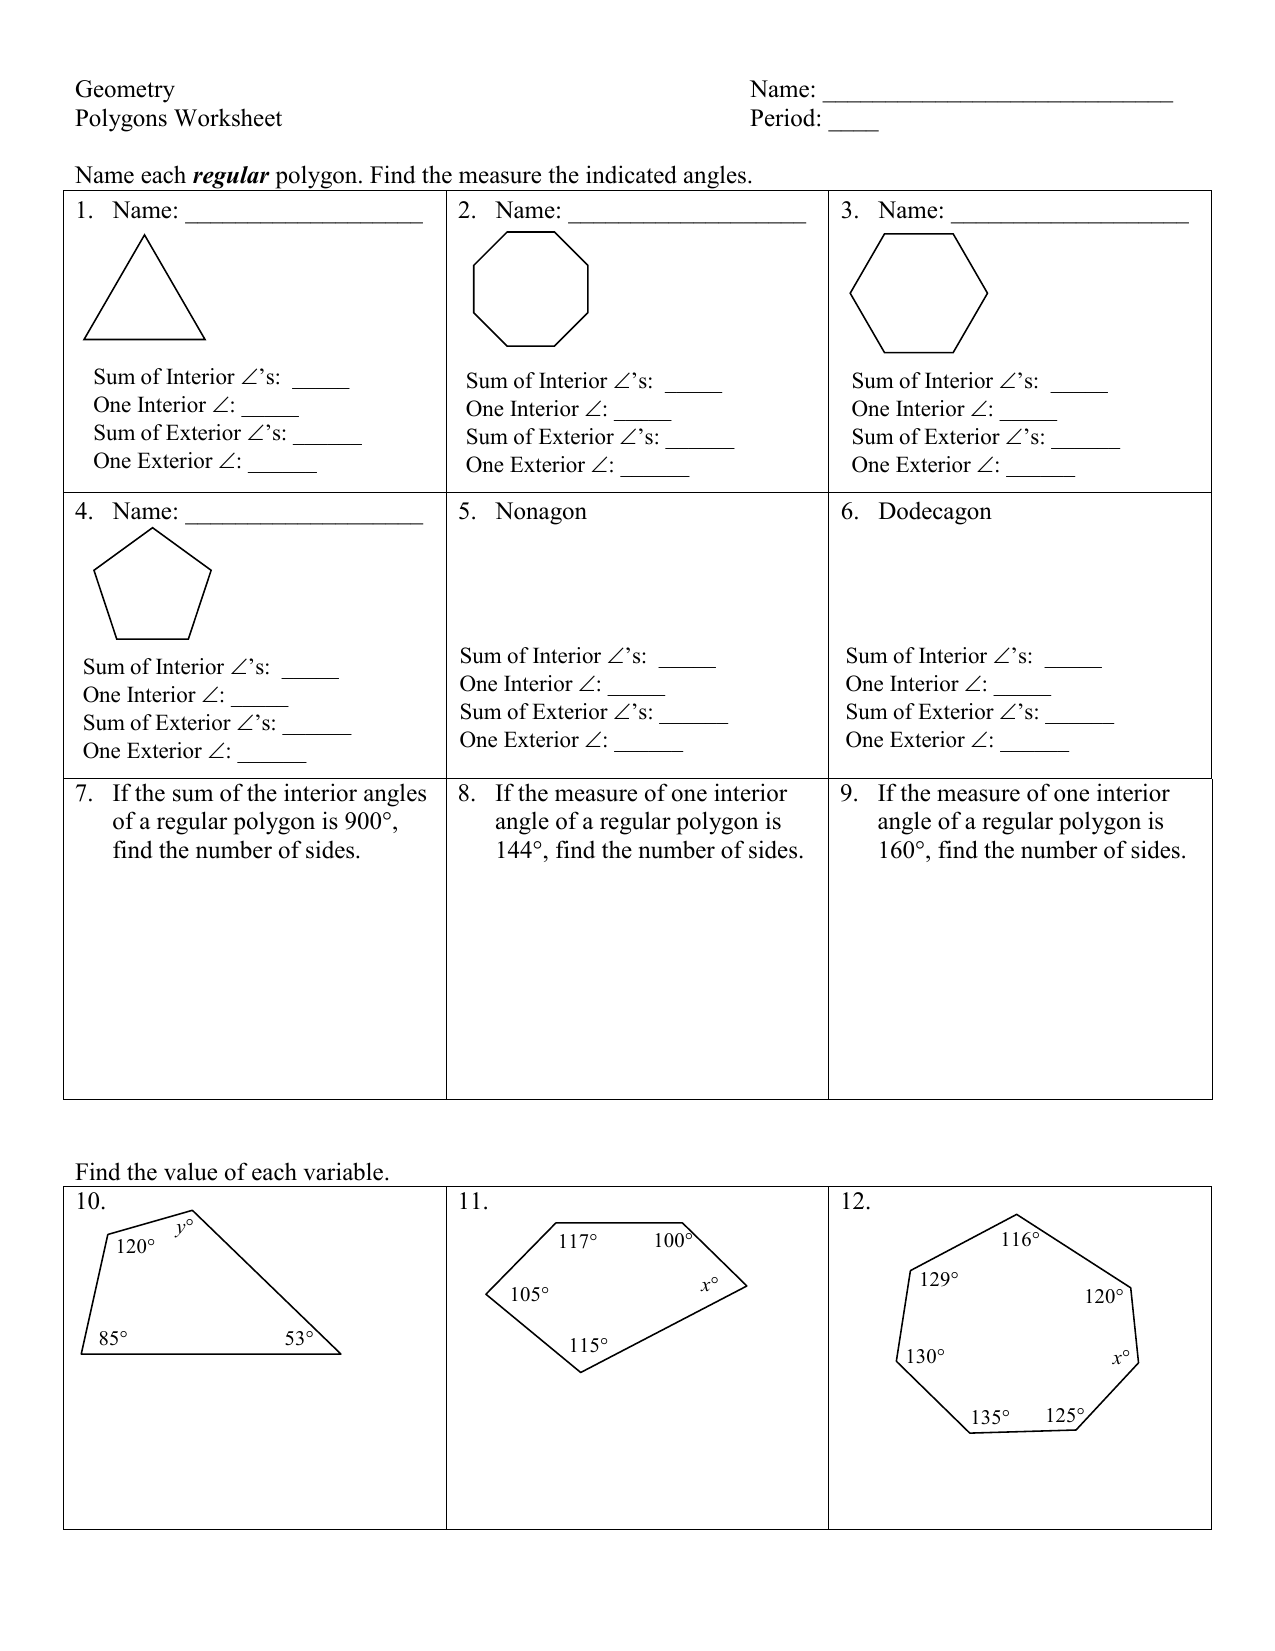 Area Of Regular Polygons Worksheet Answers